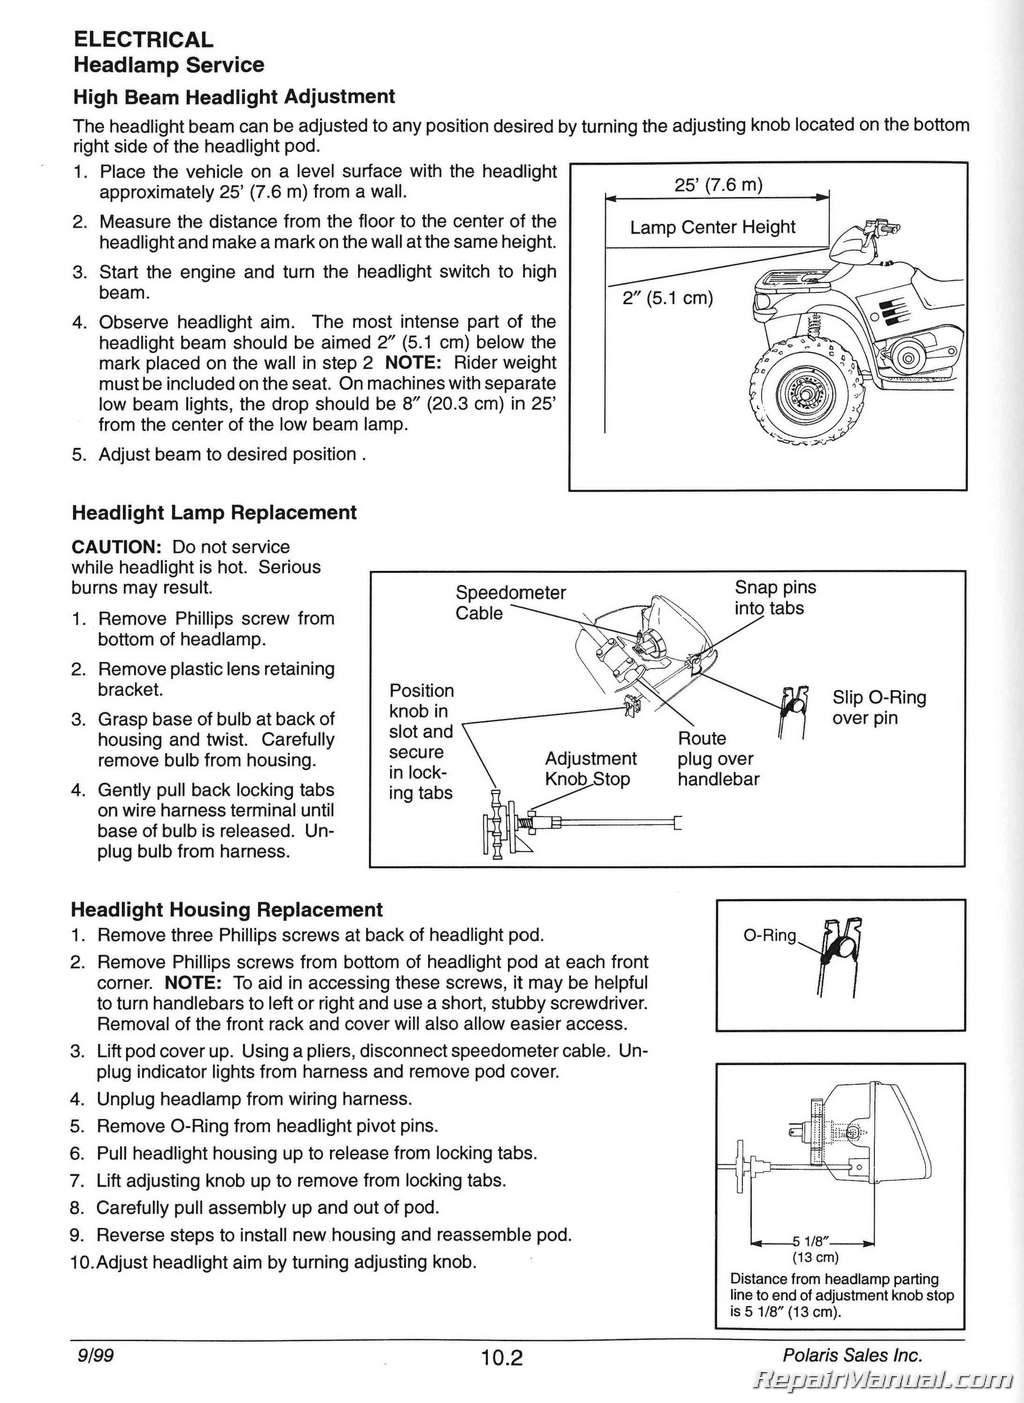 1996 Polaris Sportsman 500 Stator Wiring Diagram 9 Tooth 2000 335 Atv Service Manual1996